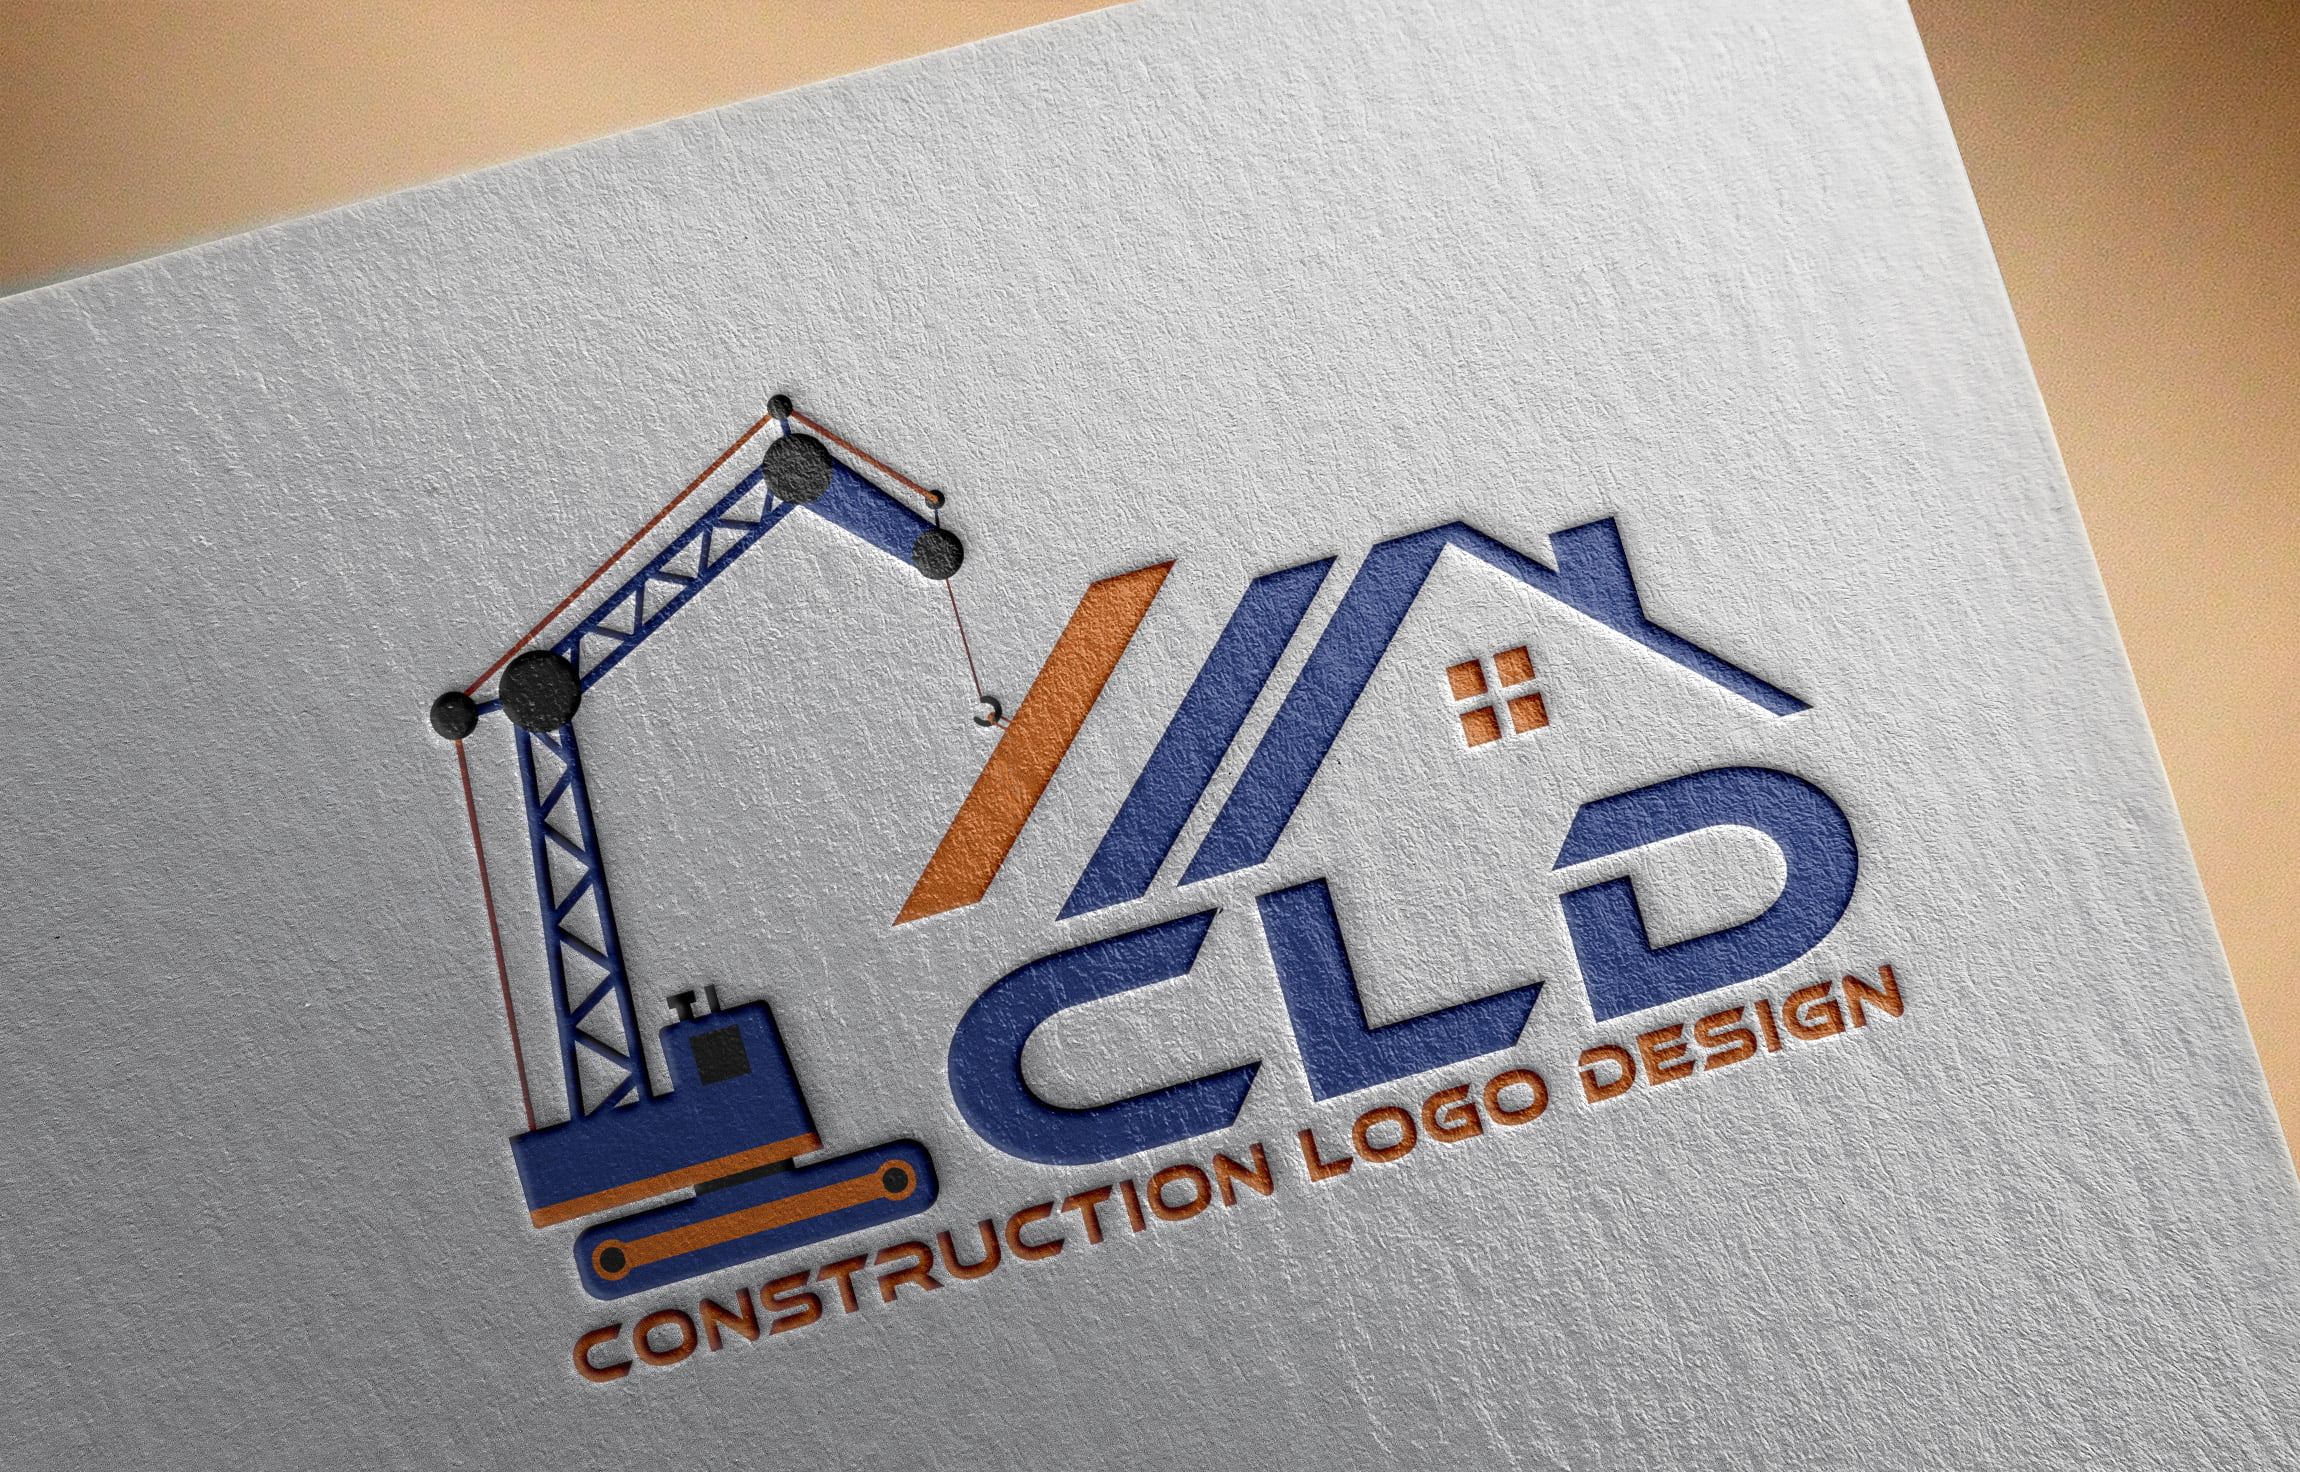 Construction Logo Design on paper mockup